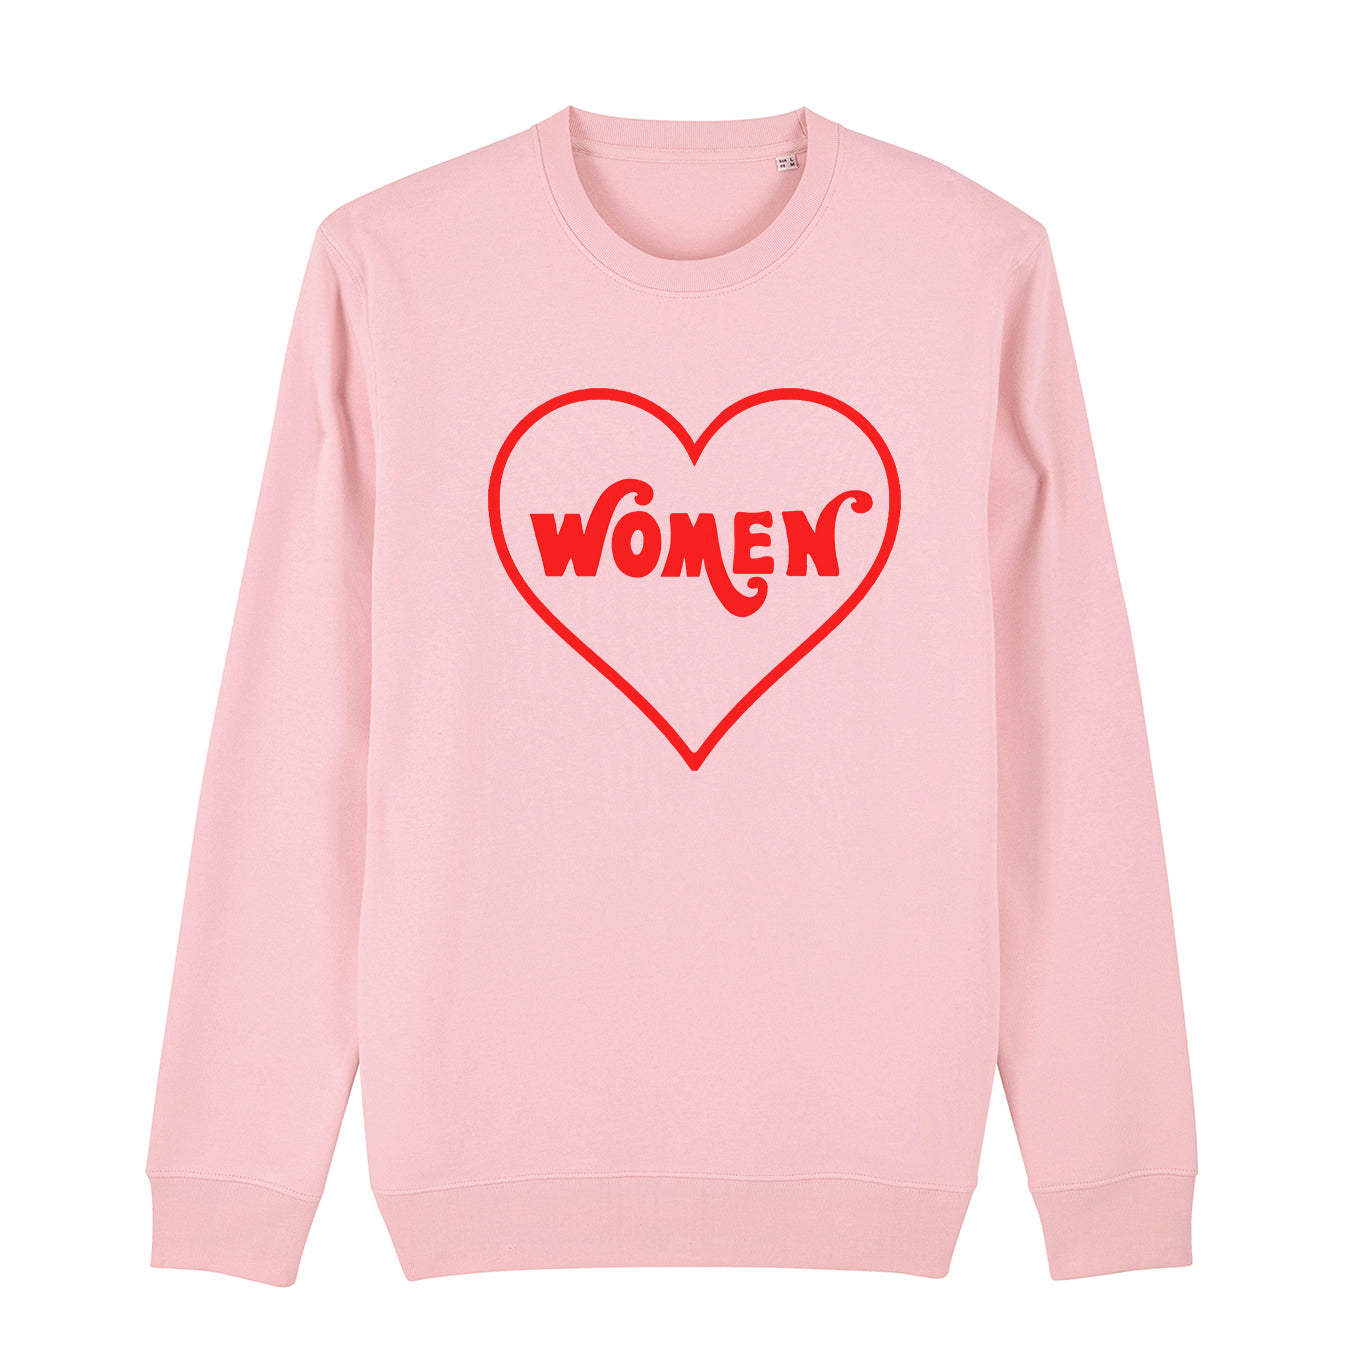 Women Print Sweatshirt